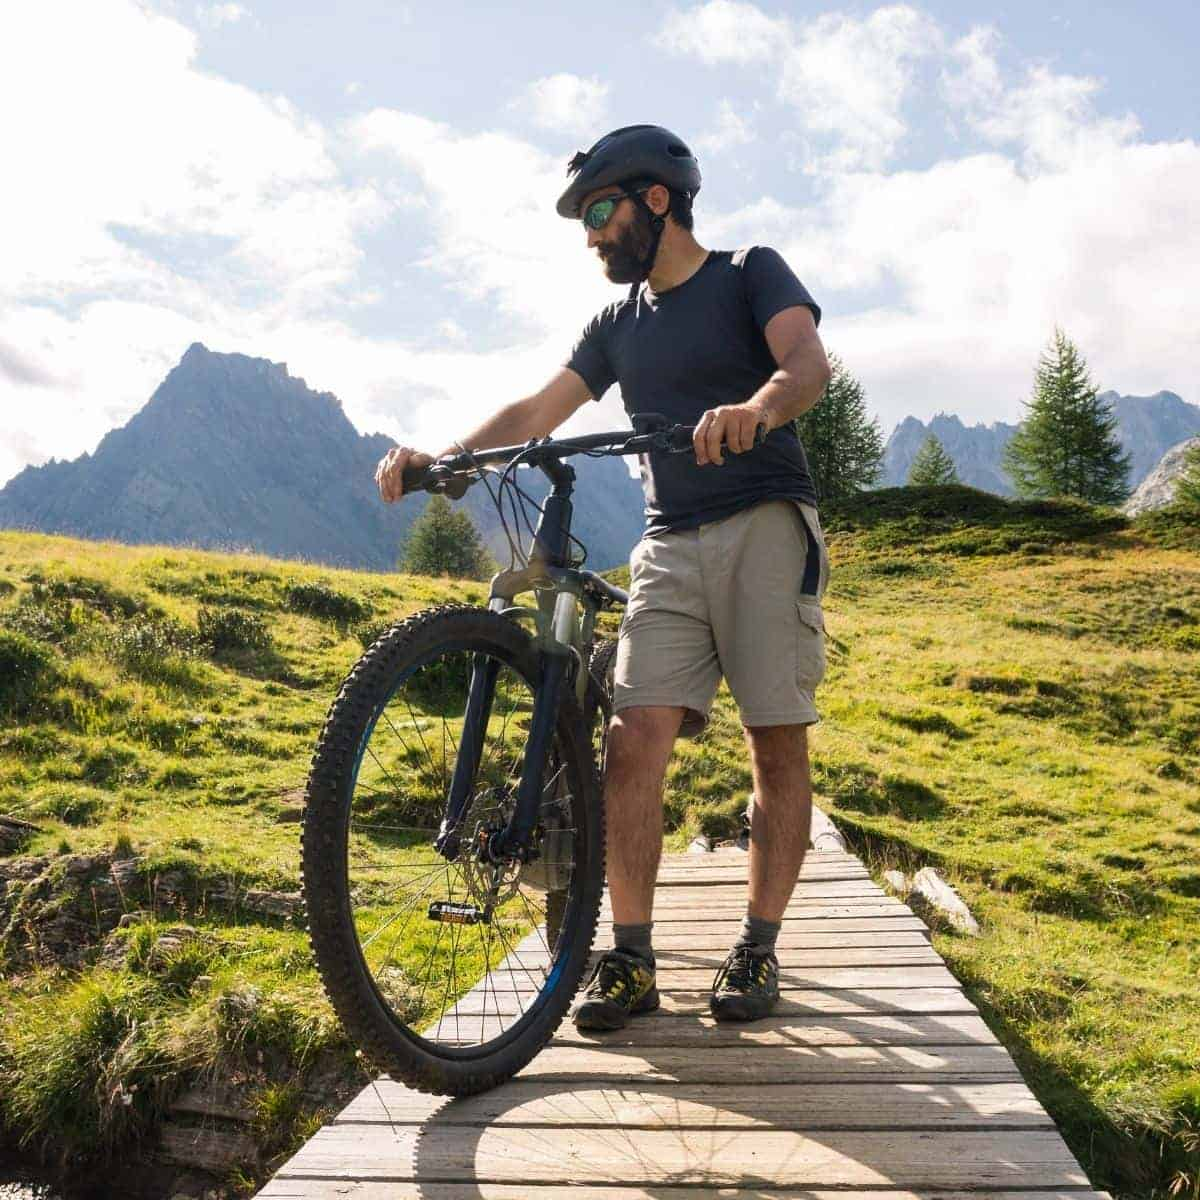 Cyclist holding a bike on a boardwalk with mountains in the background.